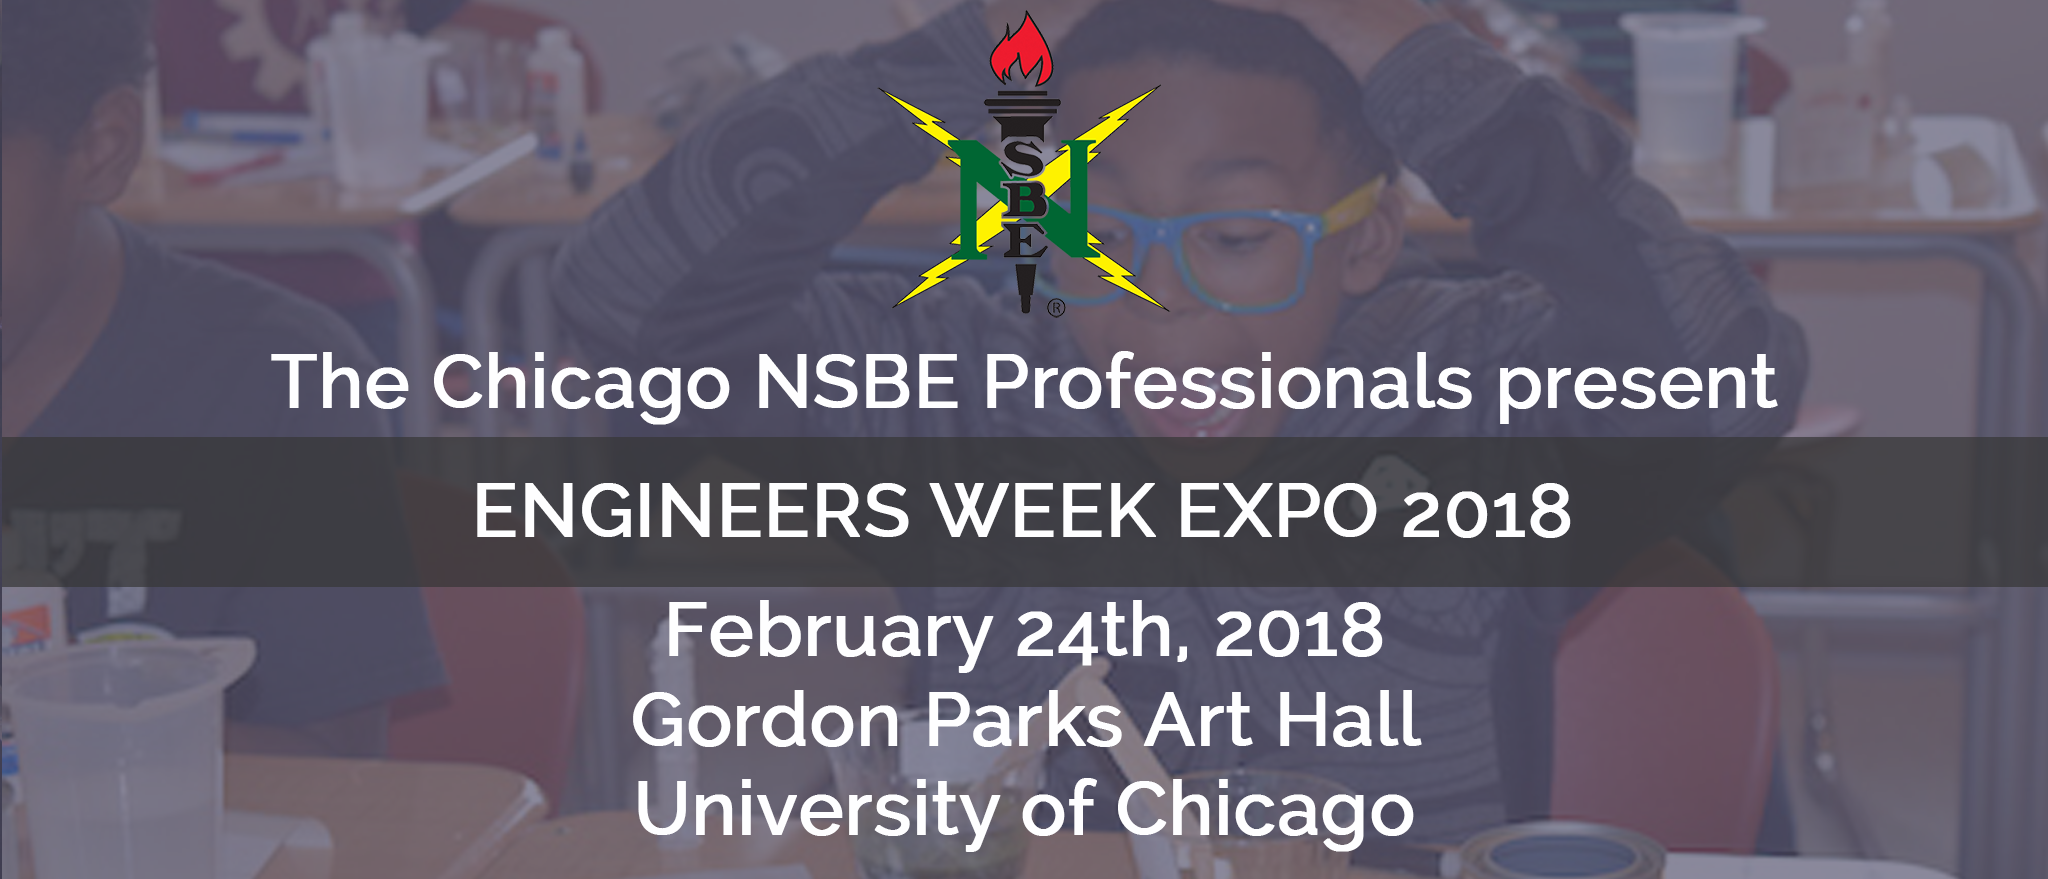 Chicago NSBE 2018 Engineers Week EXPO - Volun